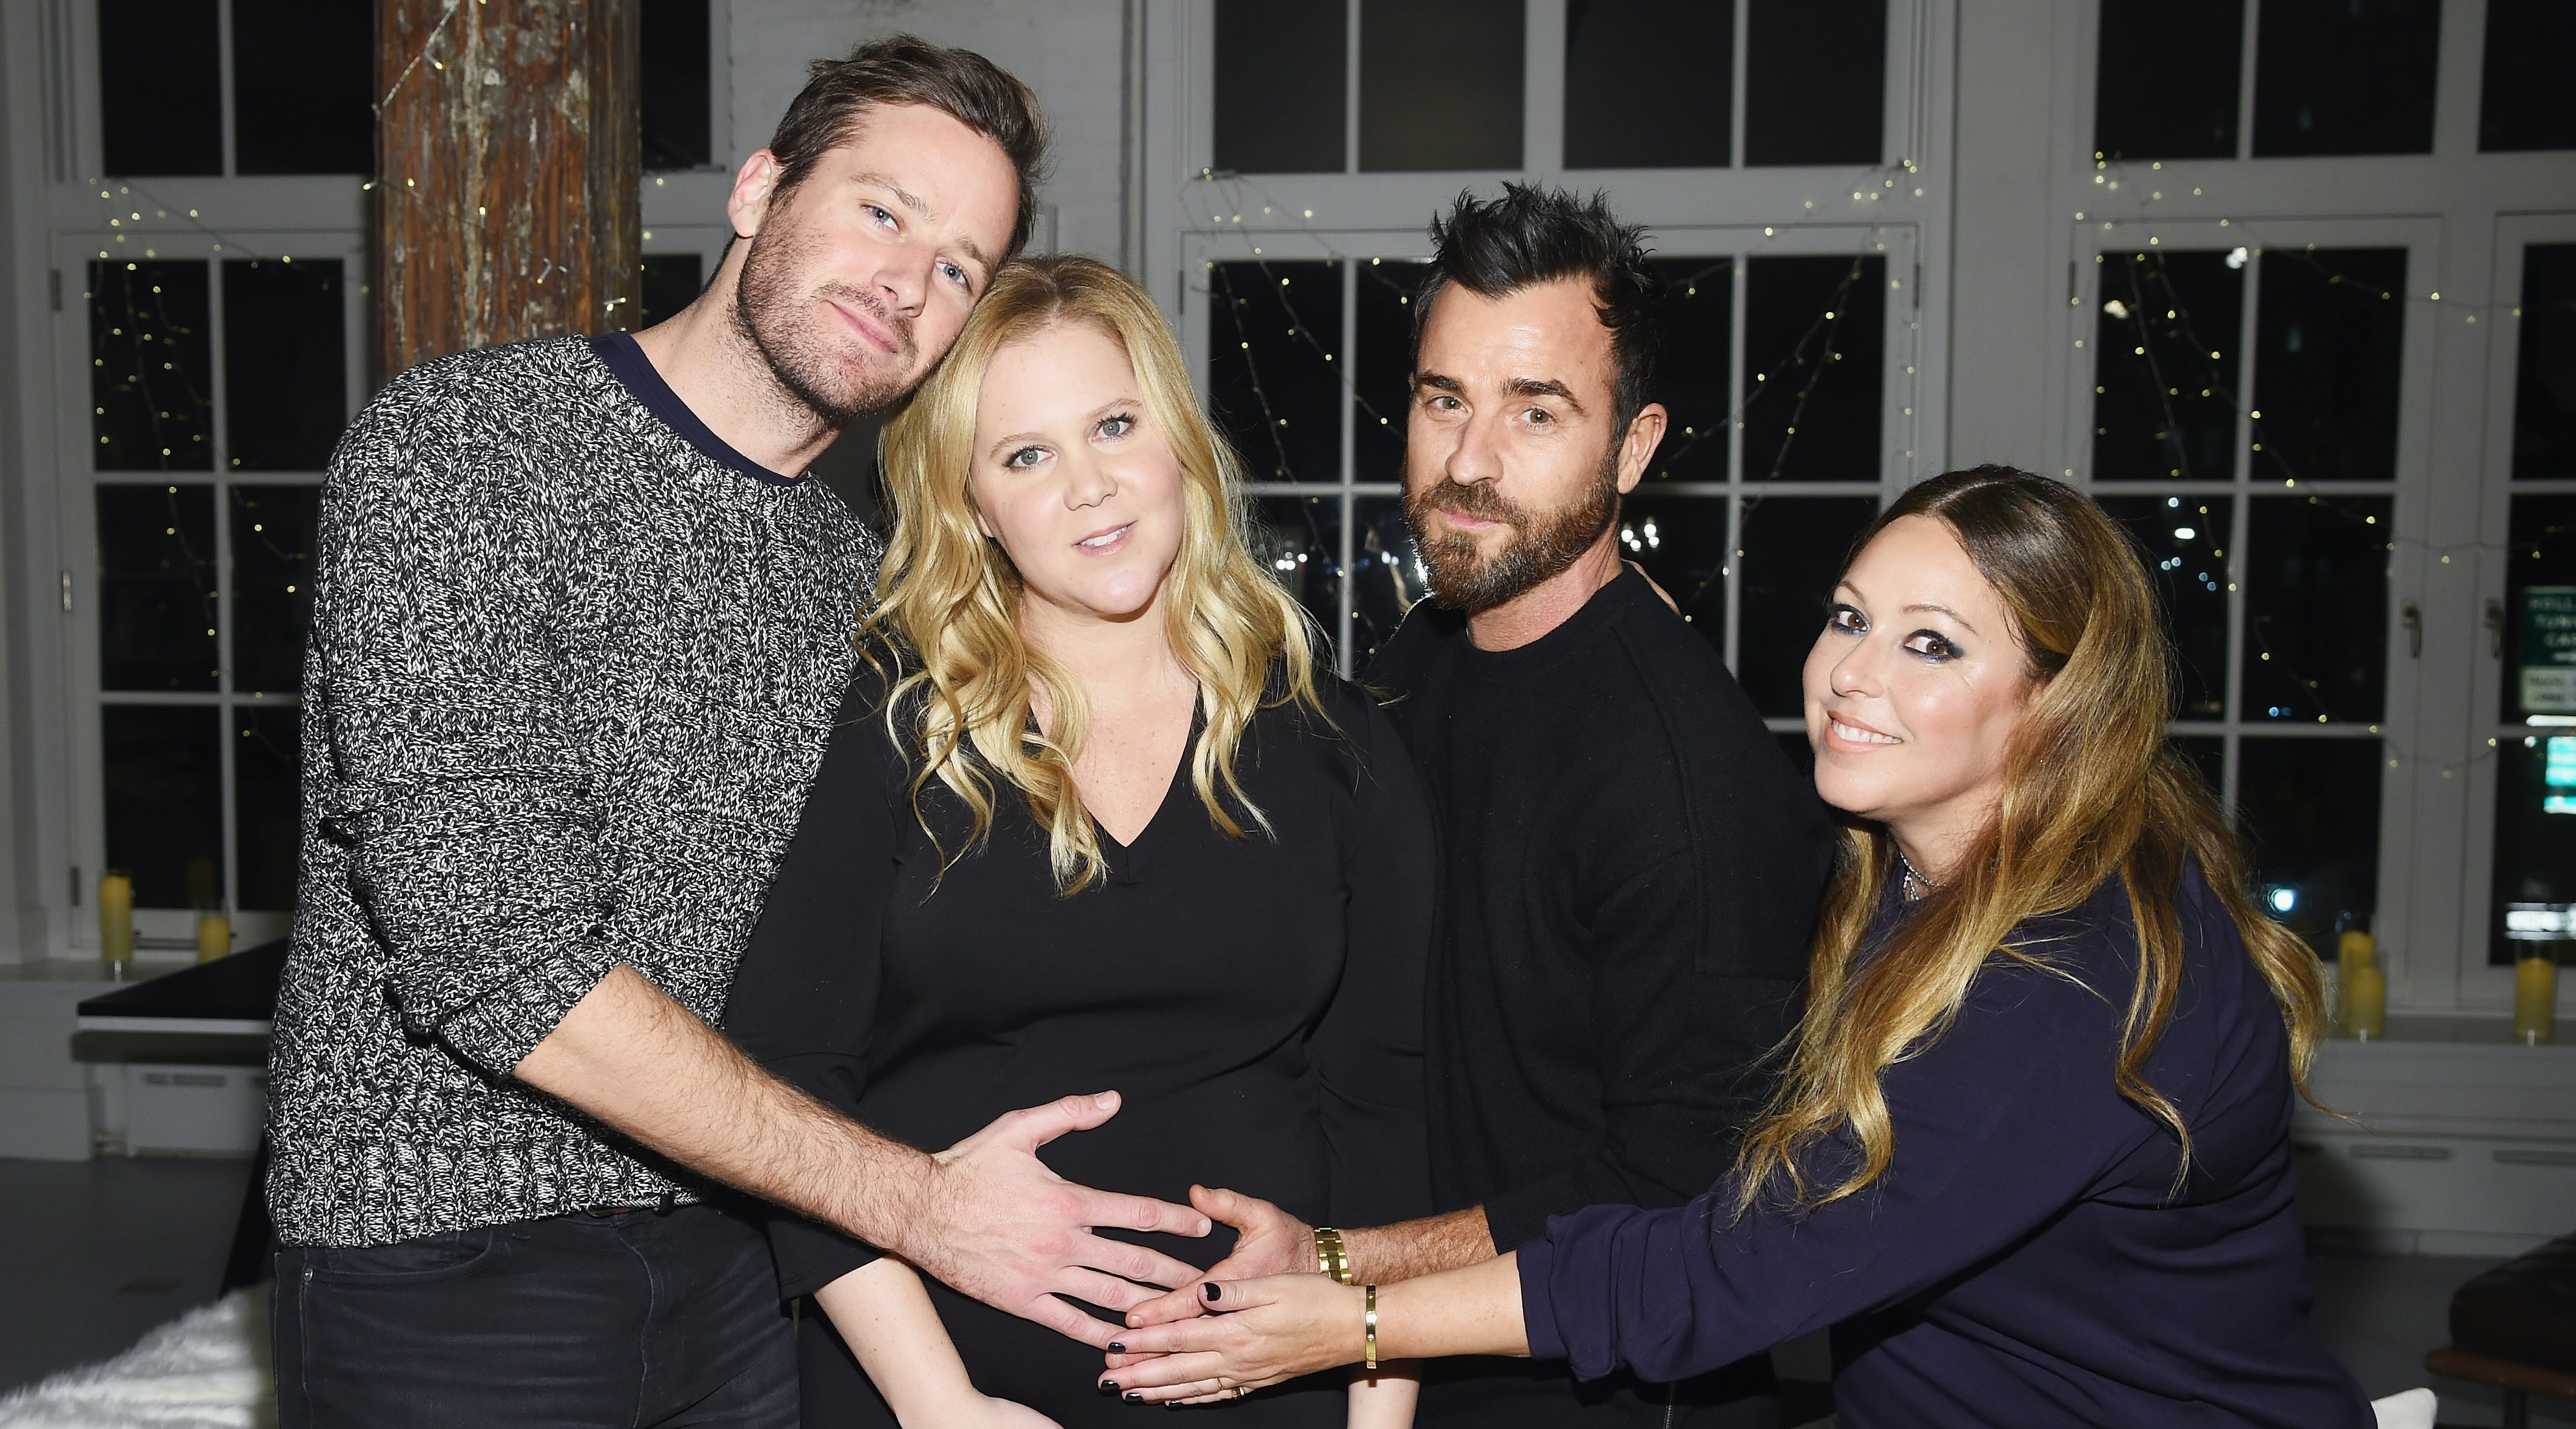 Armie Hammer & Justin Theroux Just Cradled Amy Schumer's Baby Bump and Hey, We Wouldn't Mind That